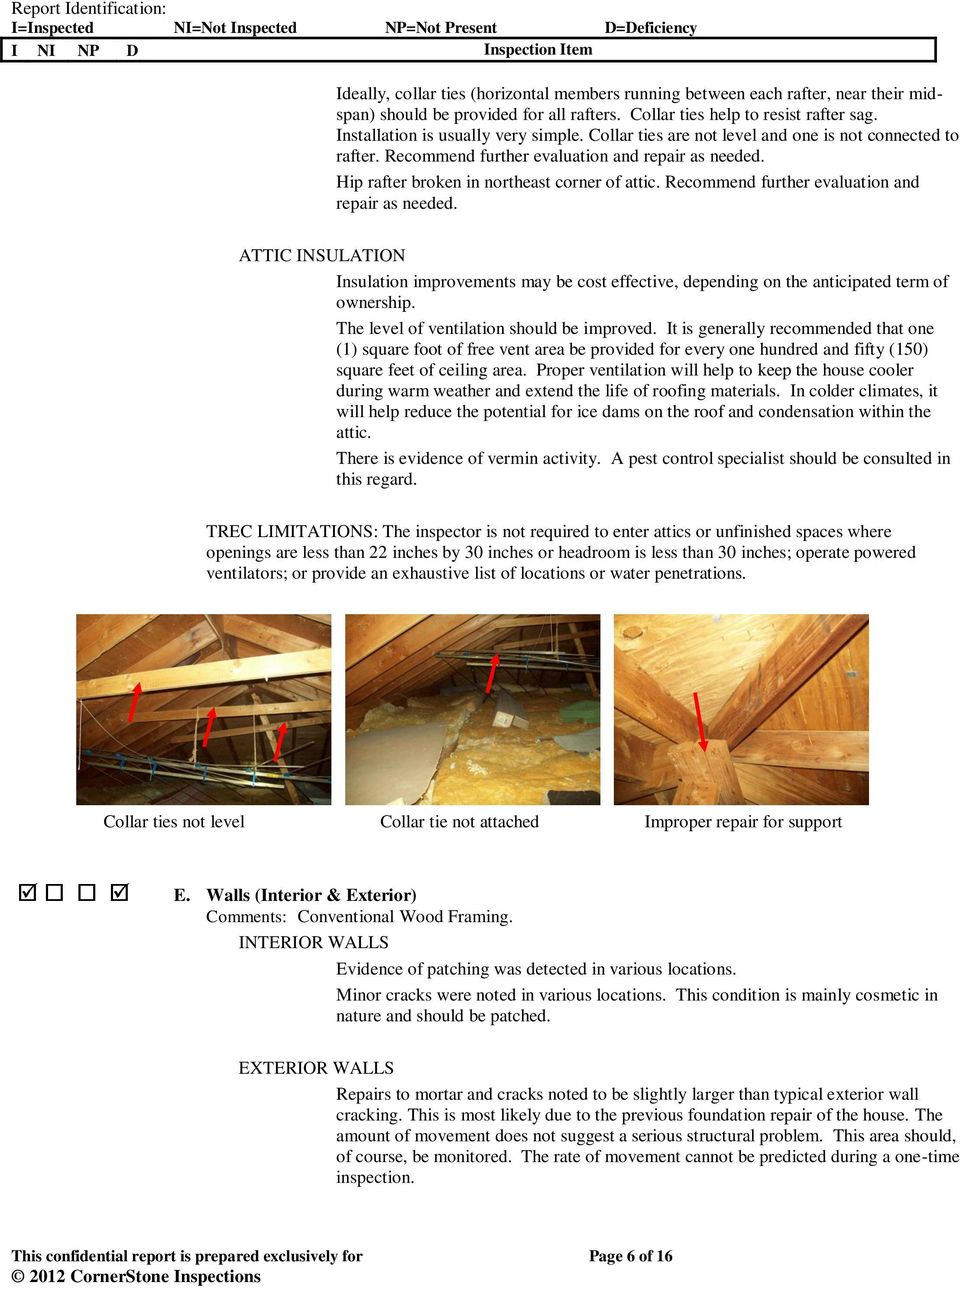 Recommend further evaluation and repair as needed. ATTIC INSULATION Insulation improvements may be cost effective, depending on the anticipated term of ownership.